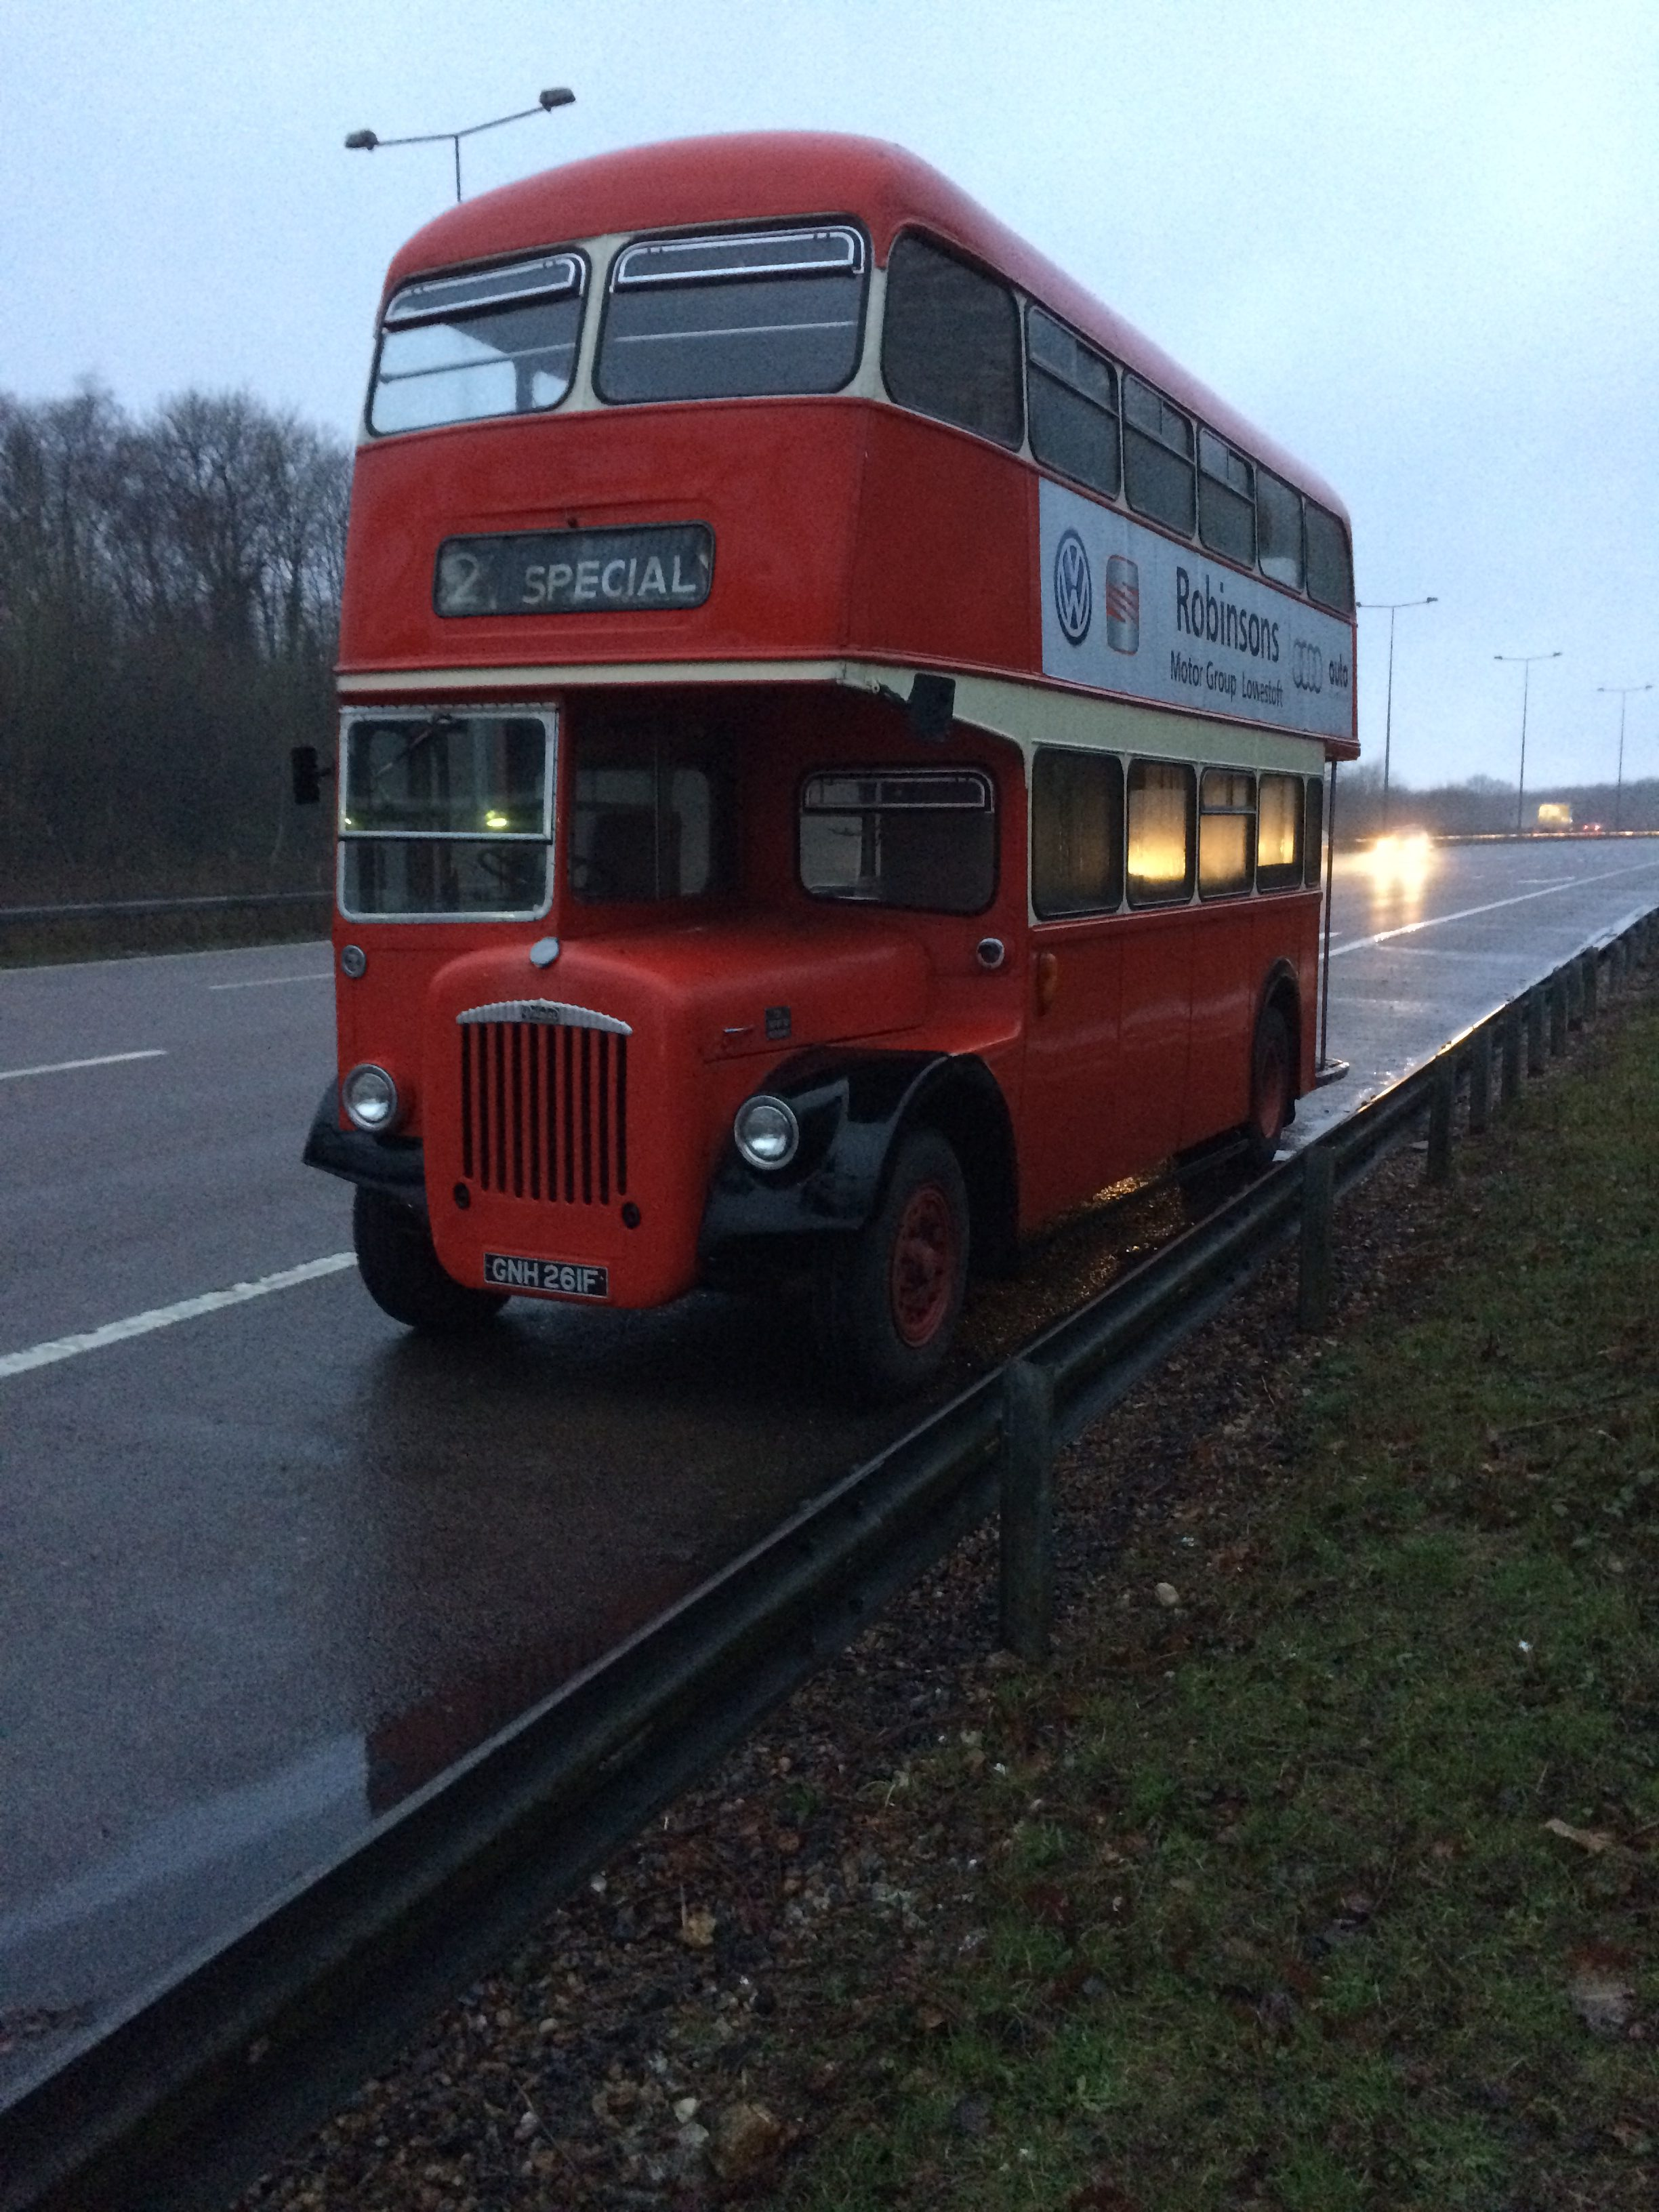 The Oxford Rose double decker bus prior to fit out